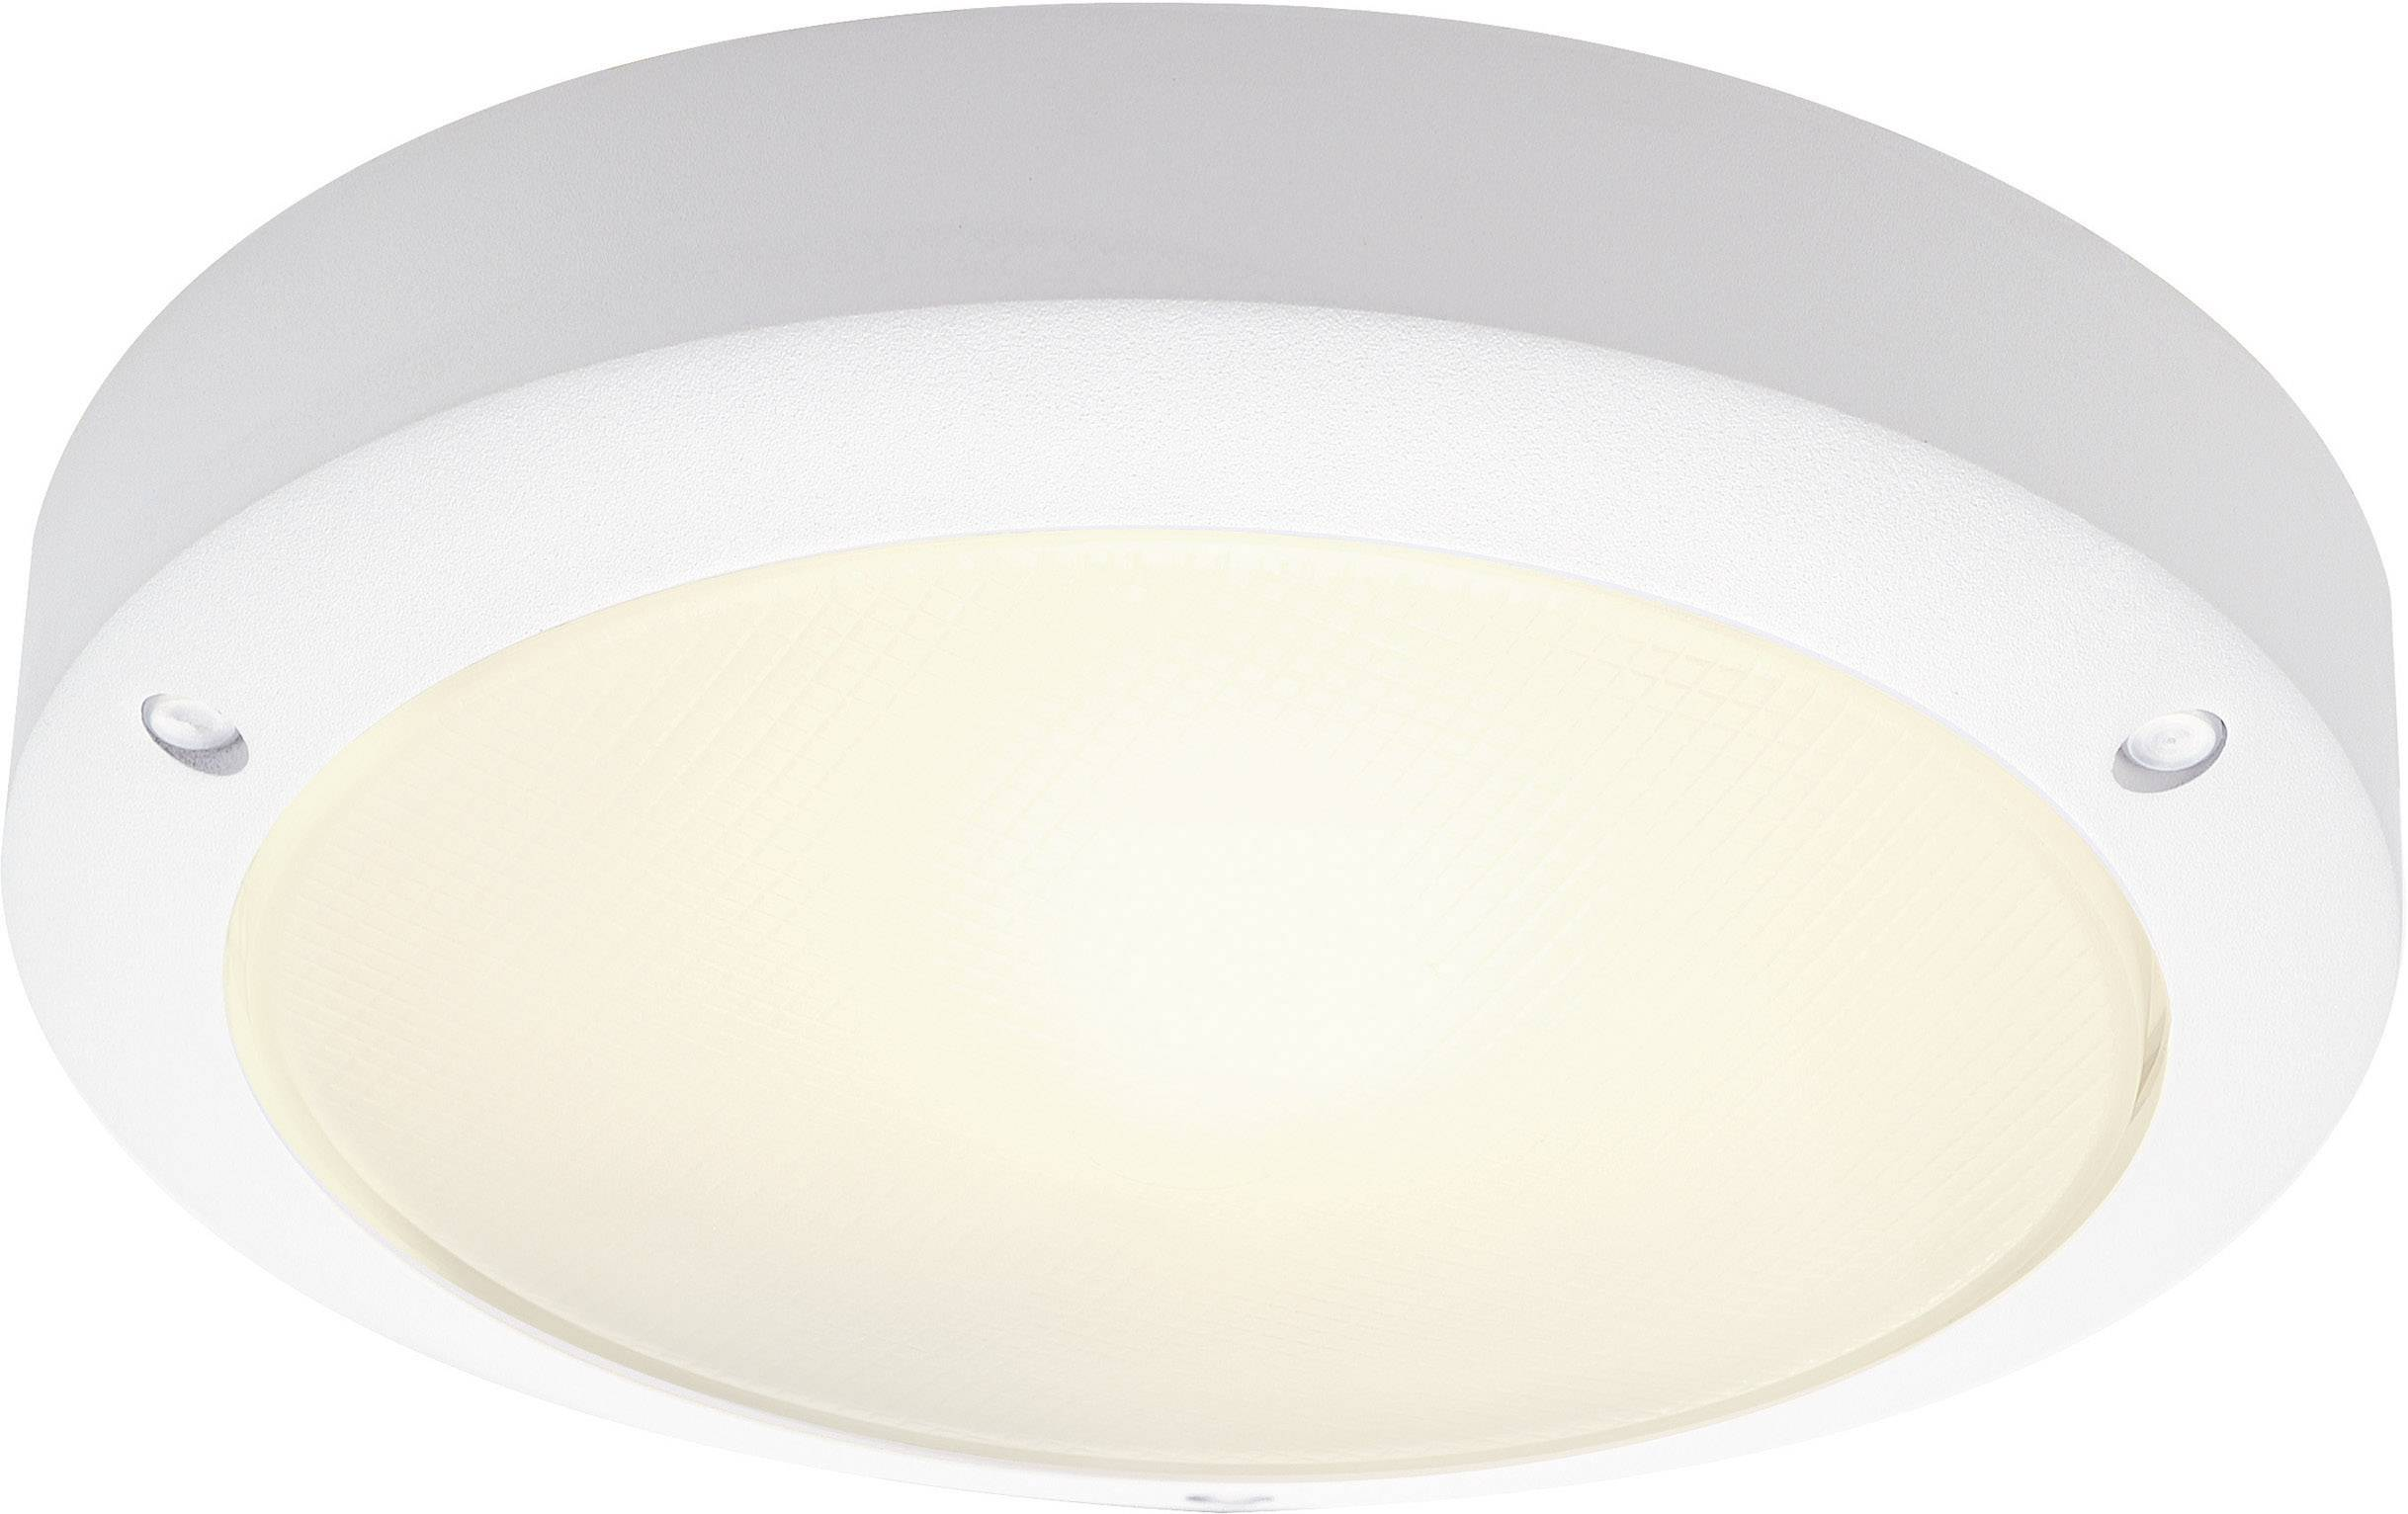 Slv lighting shell mh slv lighting wall luminare